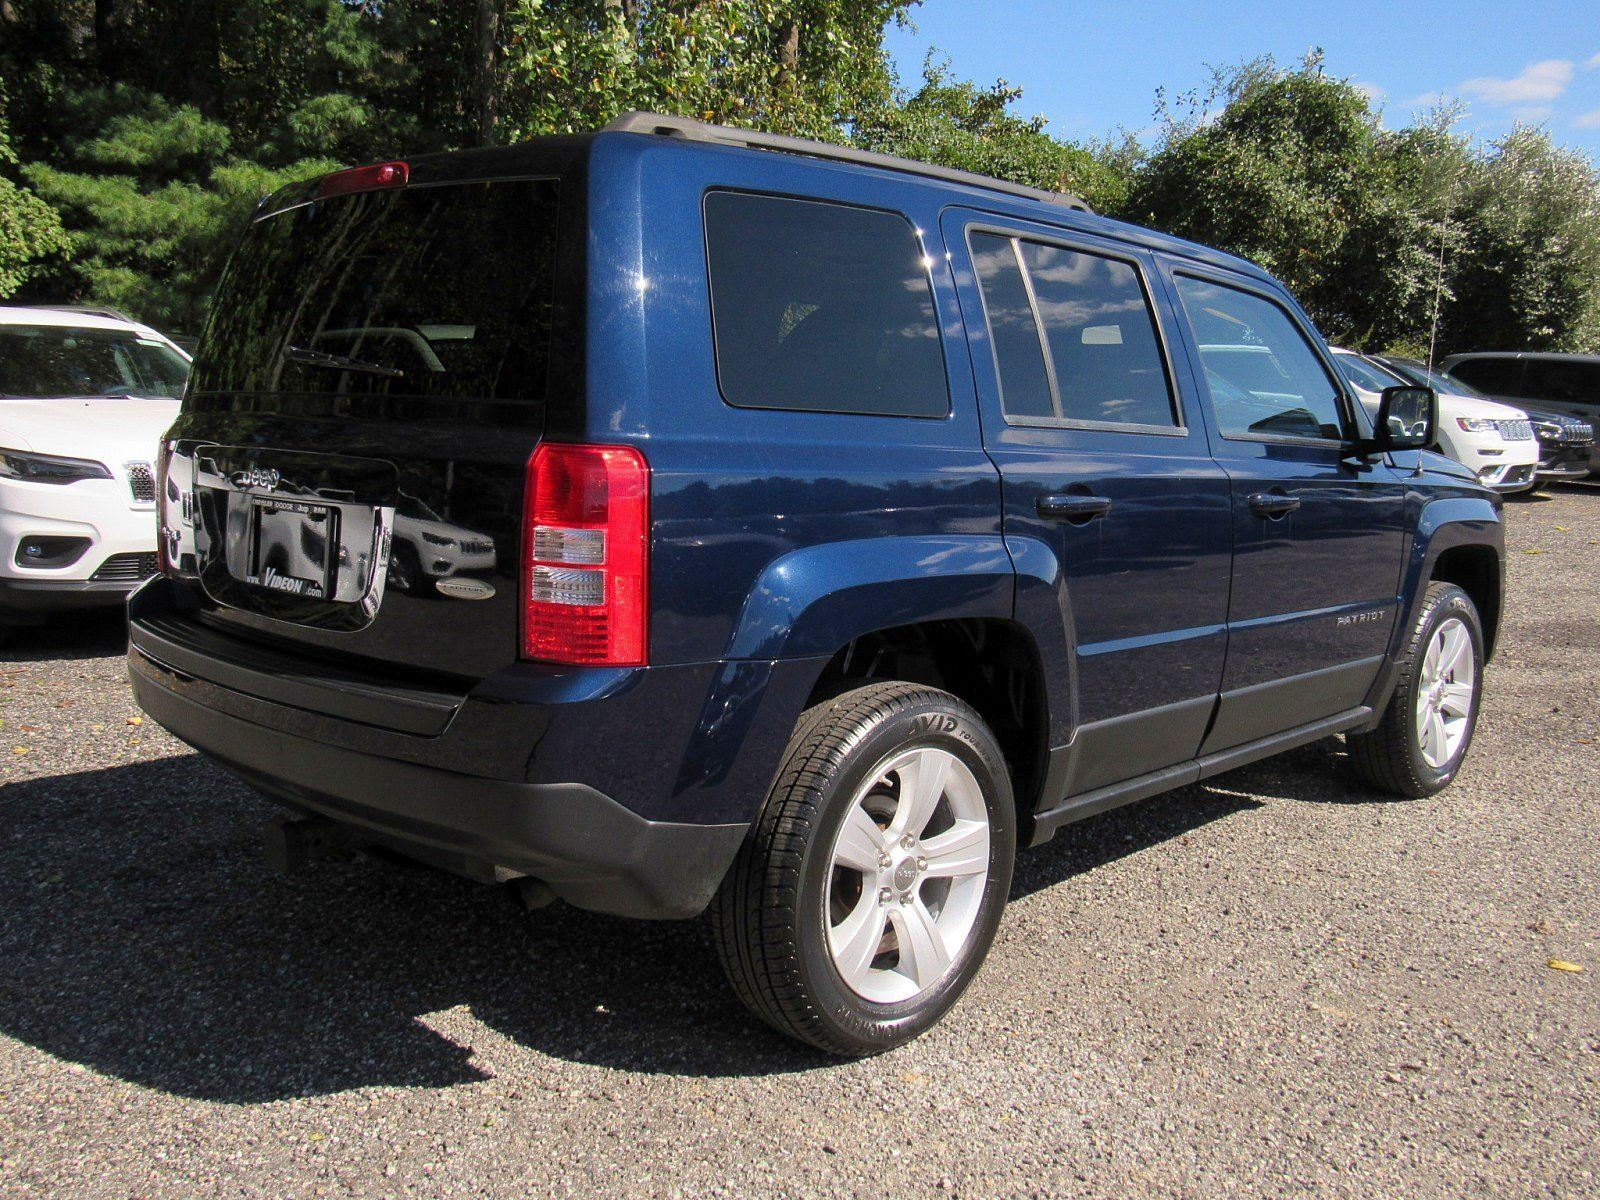 Pre-Owned 2012 Jeep Patriot Latitude Sport Utility in Newtown Square  #J0256A | Videon Chrysler Dodge Jeep RAM